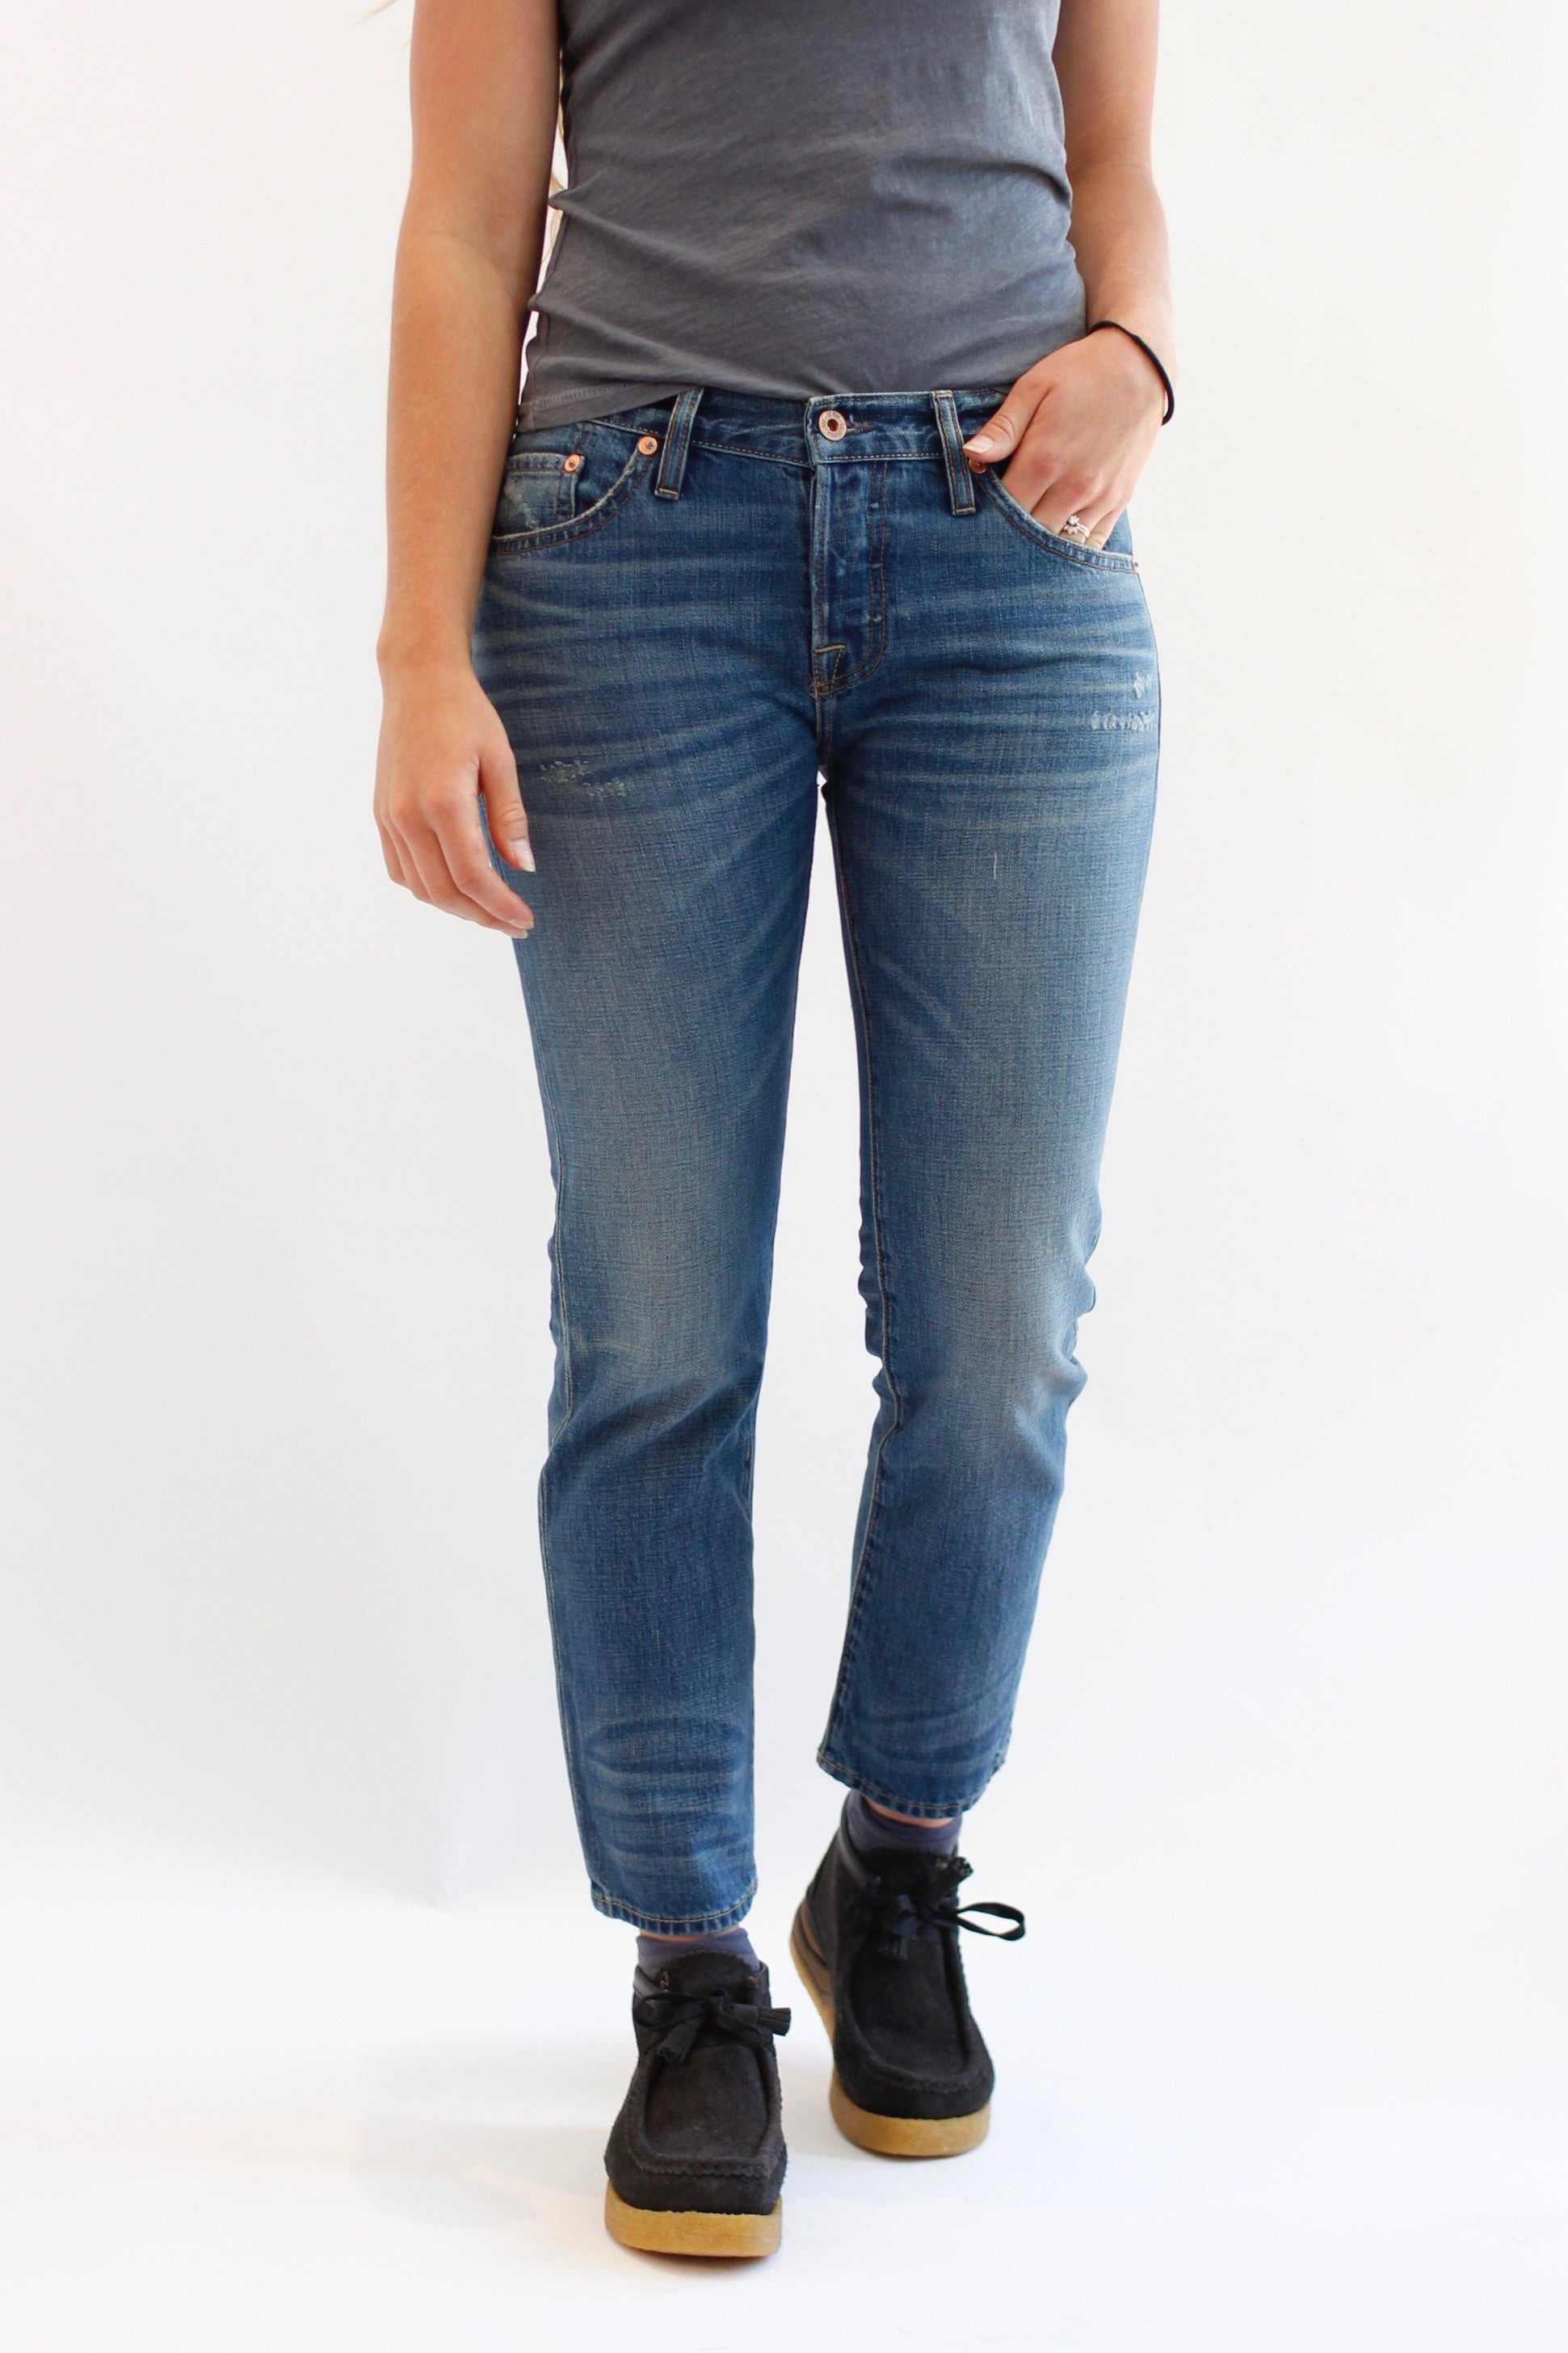 NSF Beck jean in Ryger wash